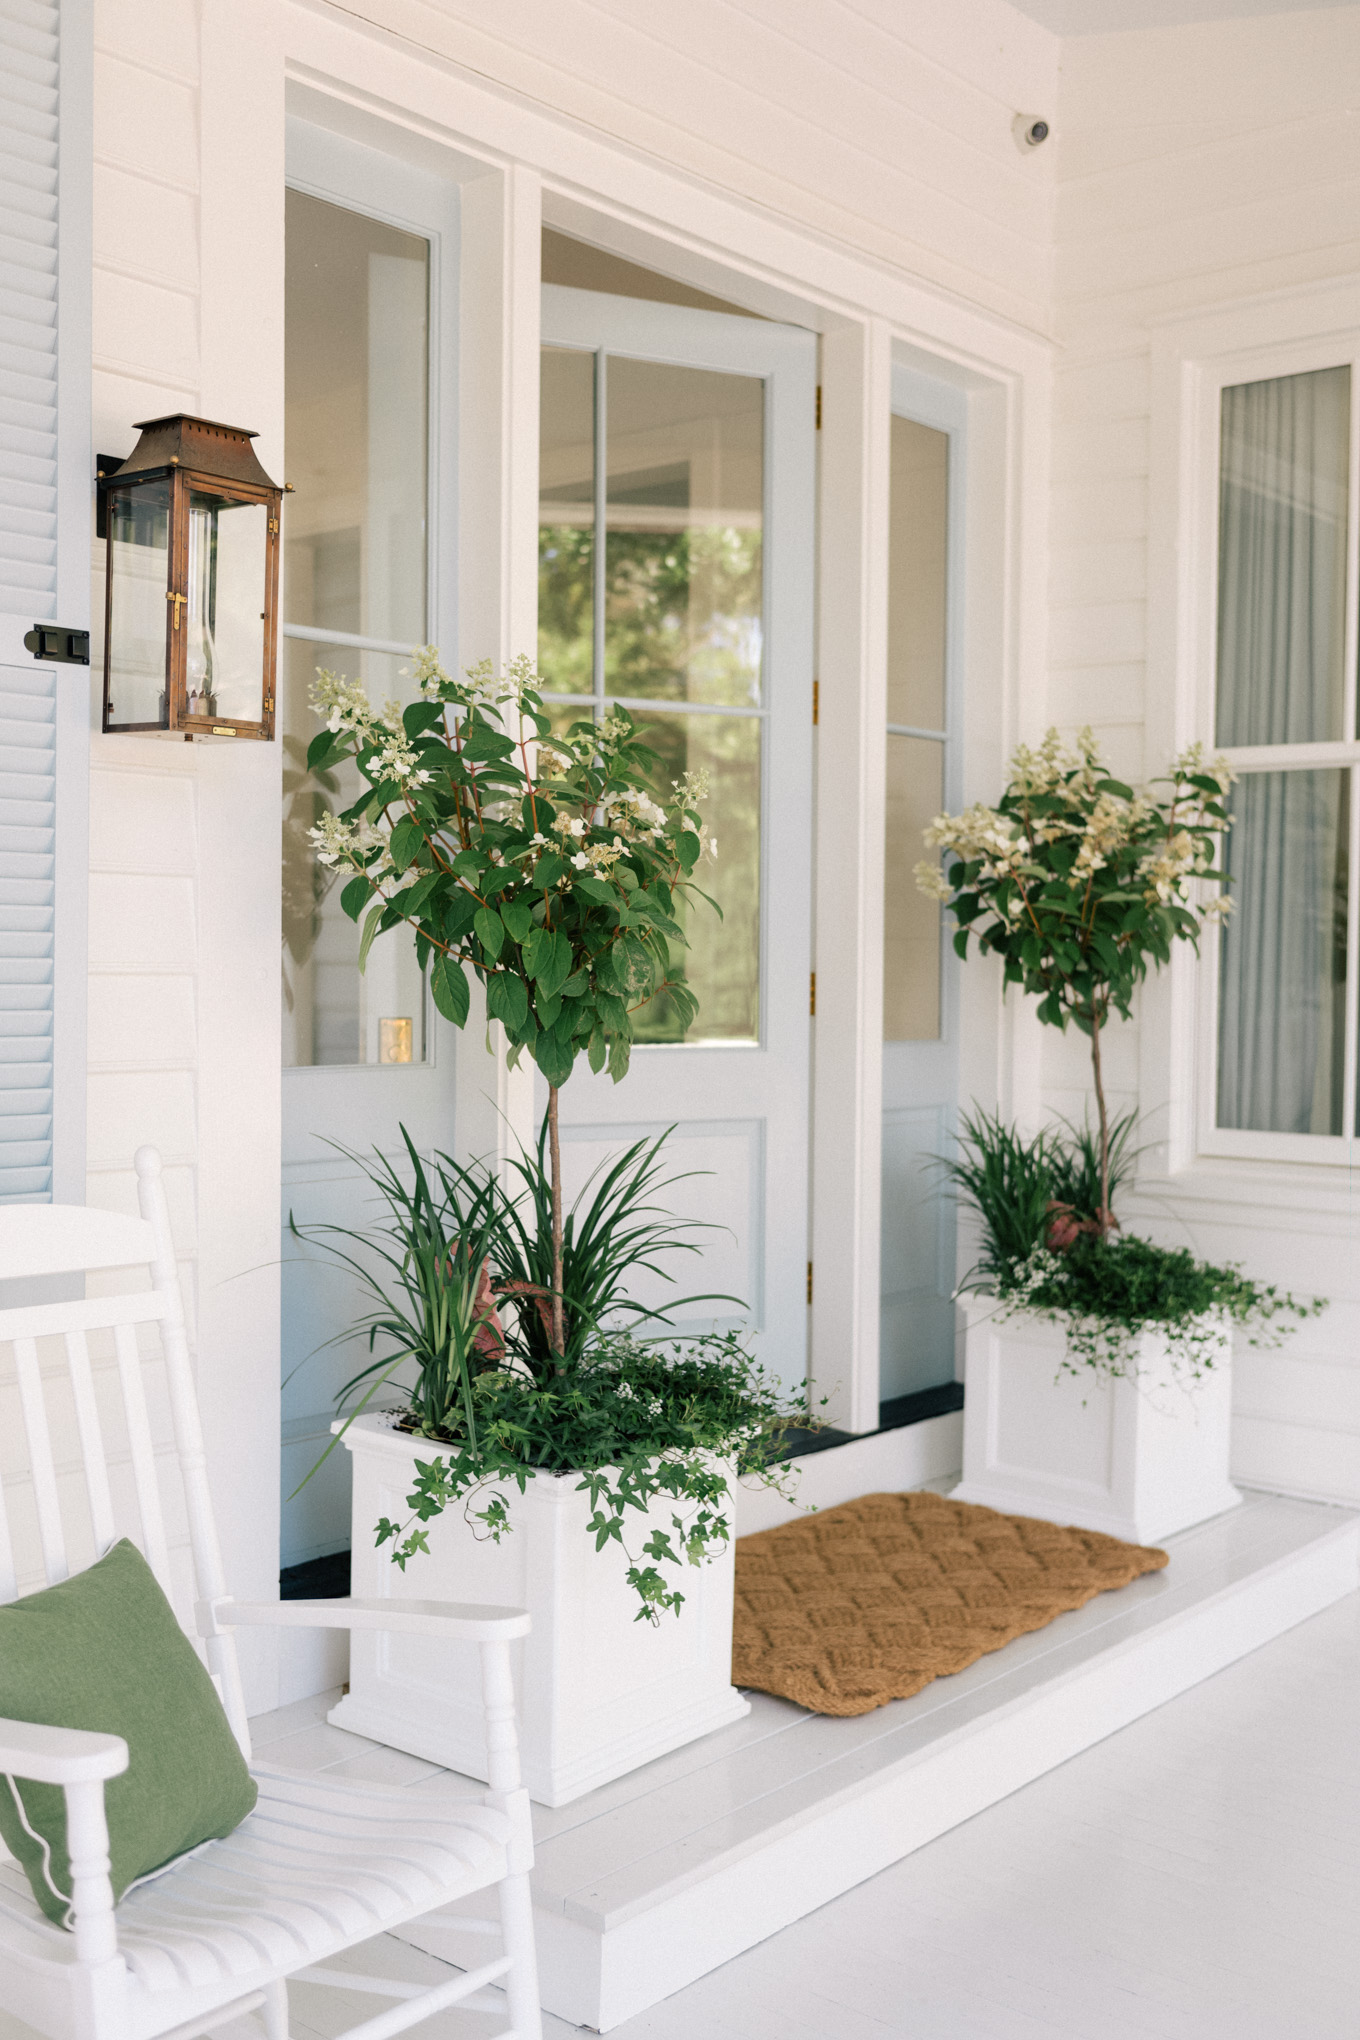 Pretty Front Porch Planters For The Portico And Entry The Well